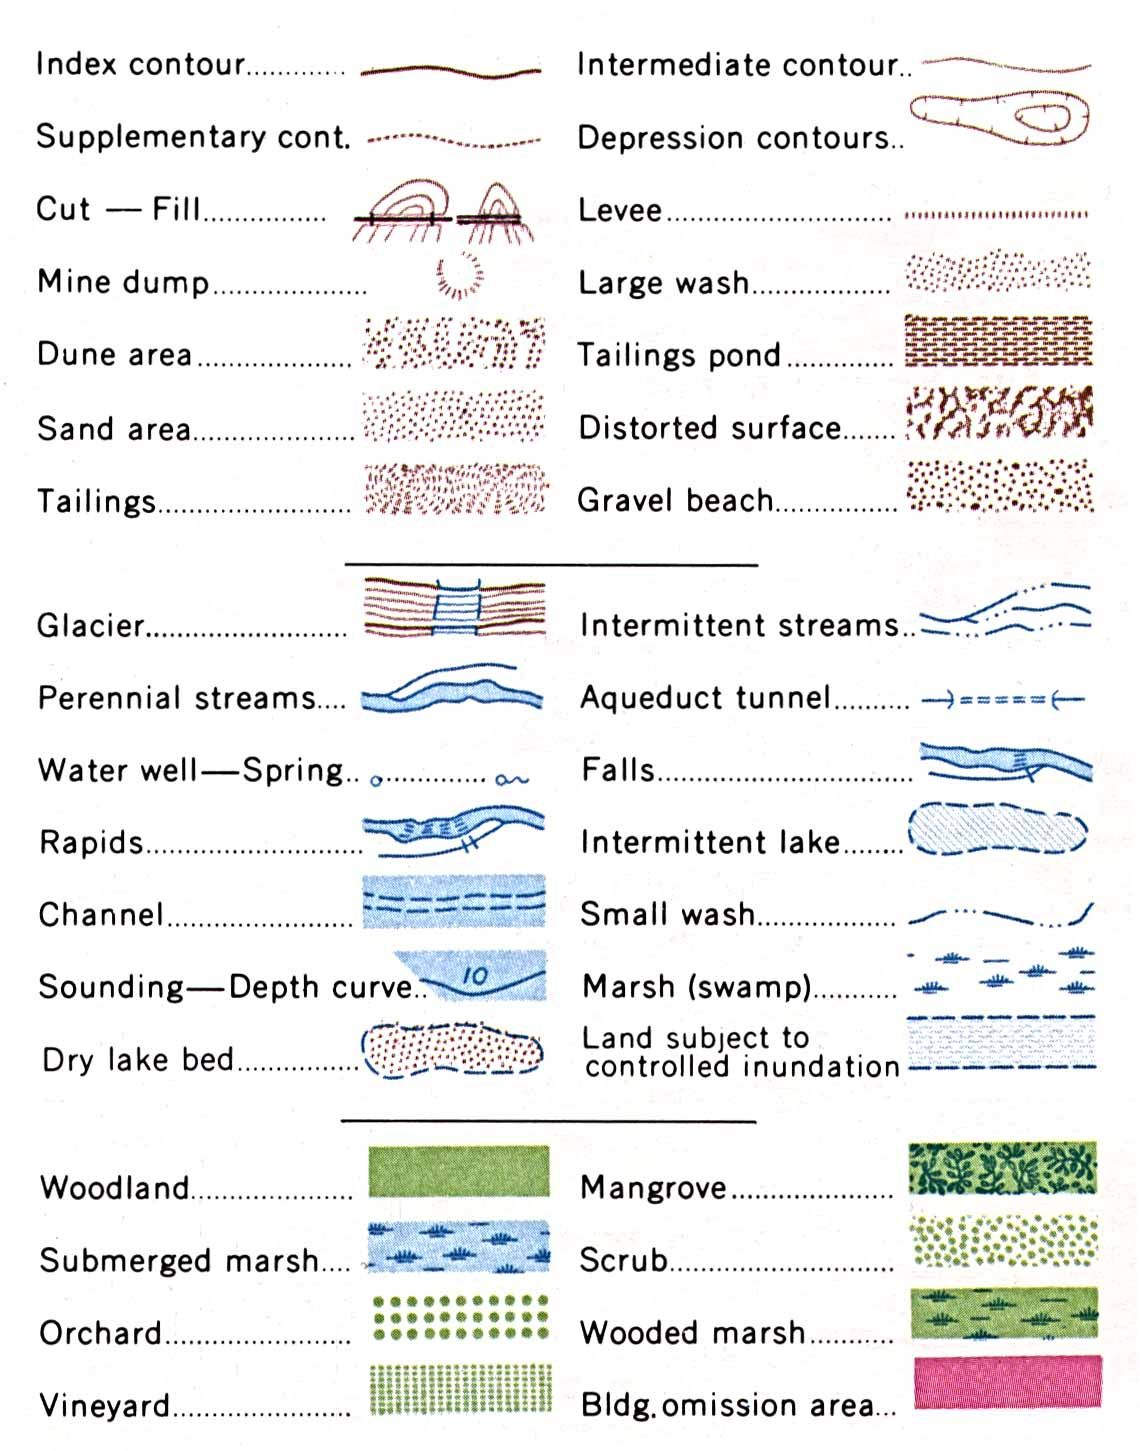 Water Legend Fun Pinterest Water Geology And Cartography - Us map legend